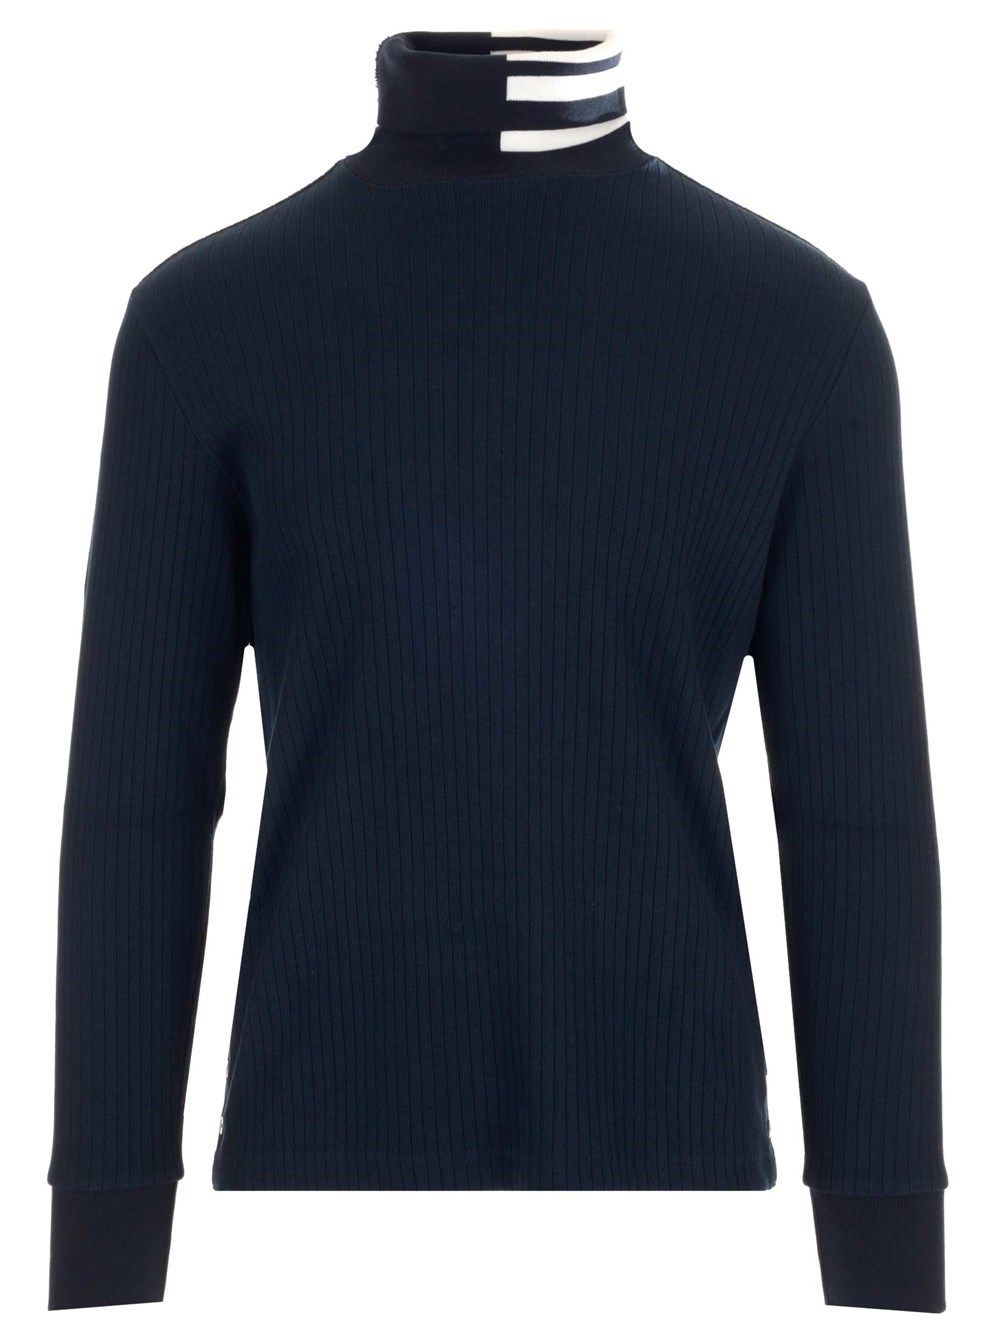 Thom Browne Cottons THOM BROWNE MEN'S BLUE OTHER MATERIALS SWEATER